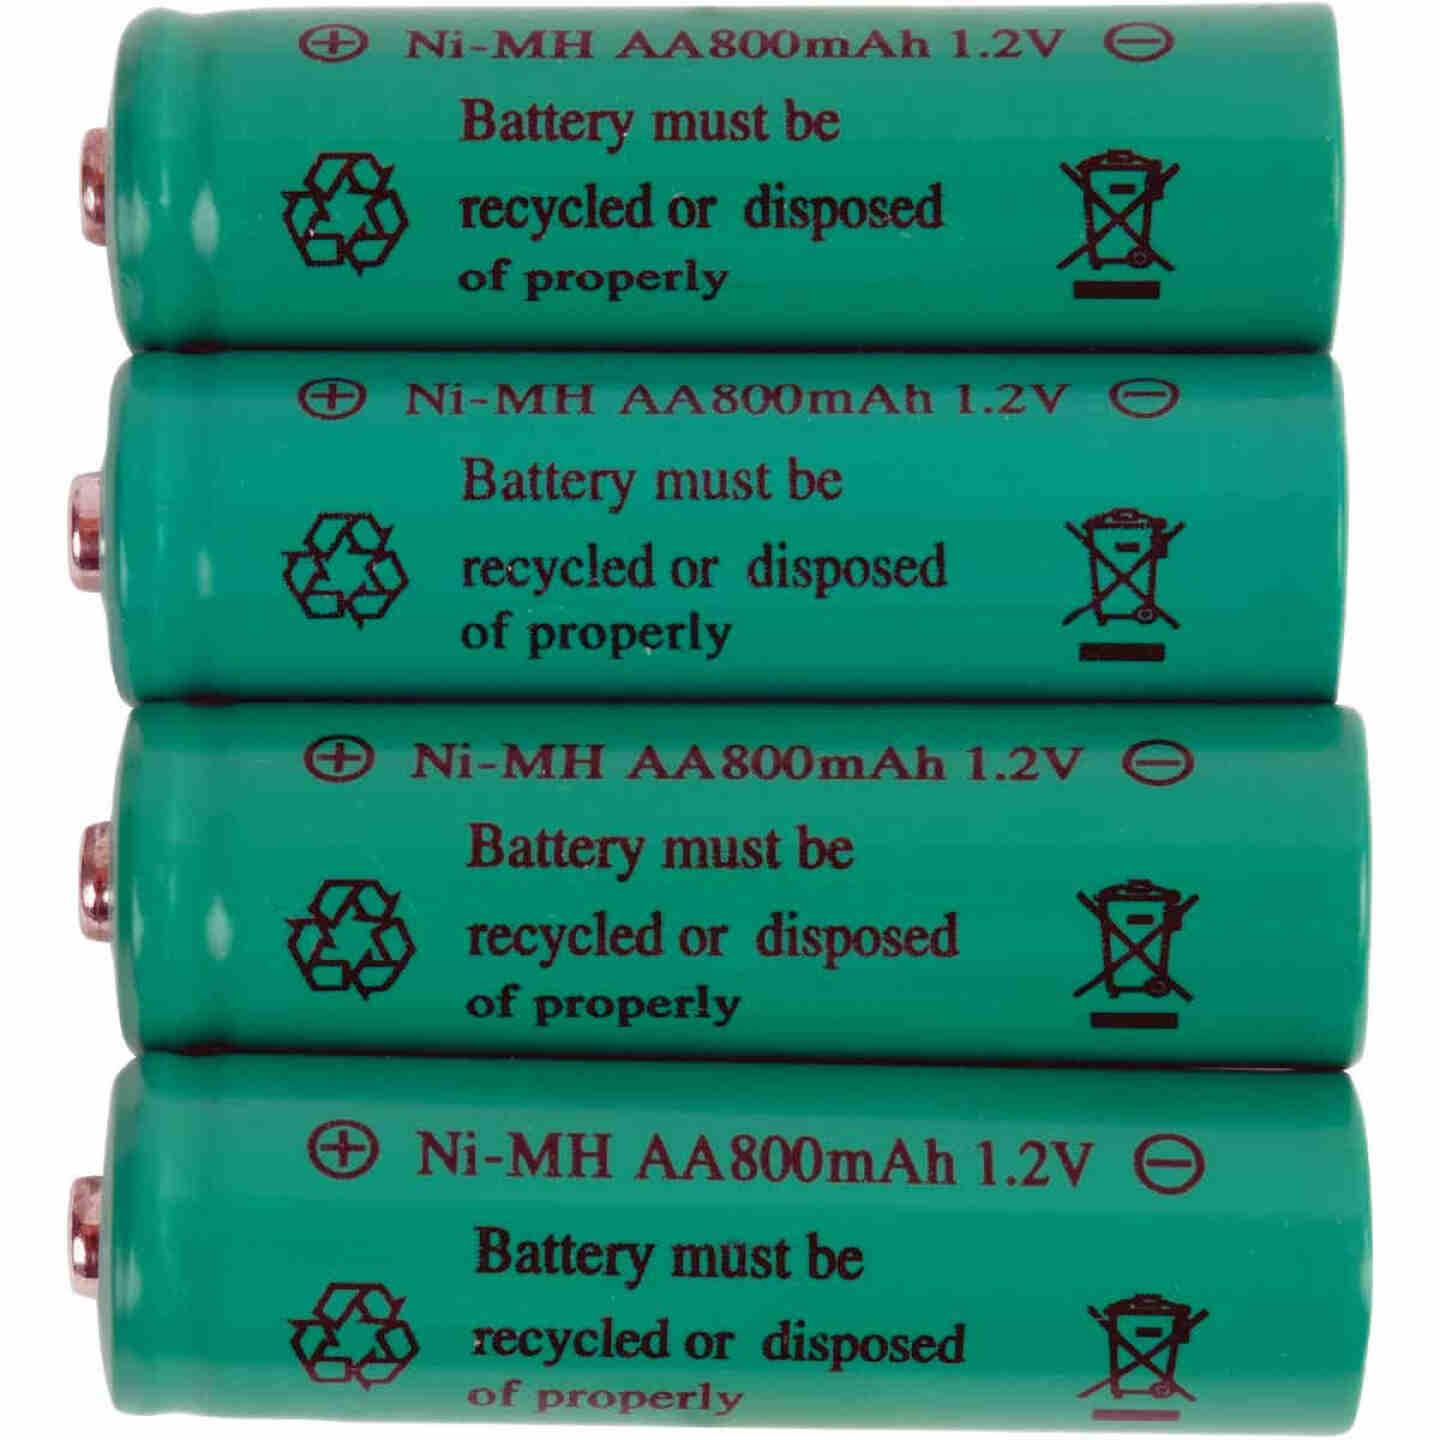 Fusion AA 600 mAh Ni-MH Solar Replacement Battery (4-Pack) Image 2